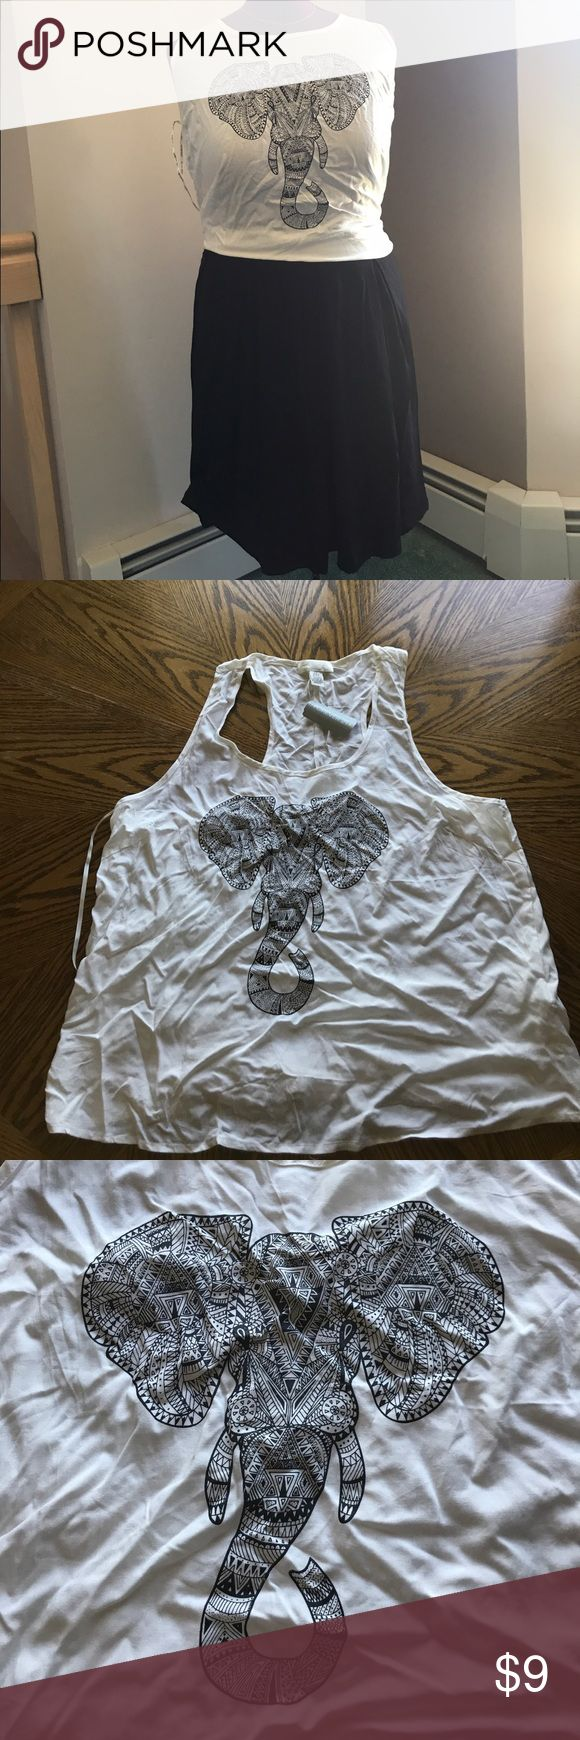 Brand New Forever 21 Elephant Tank 2X brand new with tags! Accidentally bought in a size too small for me :( super cute and great for summer! Back is kinda like a racerback (see pic!)! Super cool elephant geometric design!  trying to reduce my closet since I'm moving to Spain at the end of the summer! Offers and bundles welcome - low balls are not! :) Forever 21 Tops Tank Tops